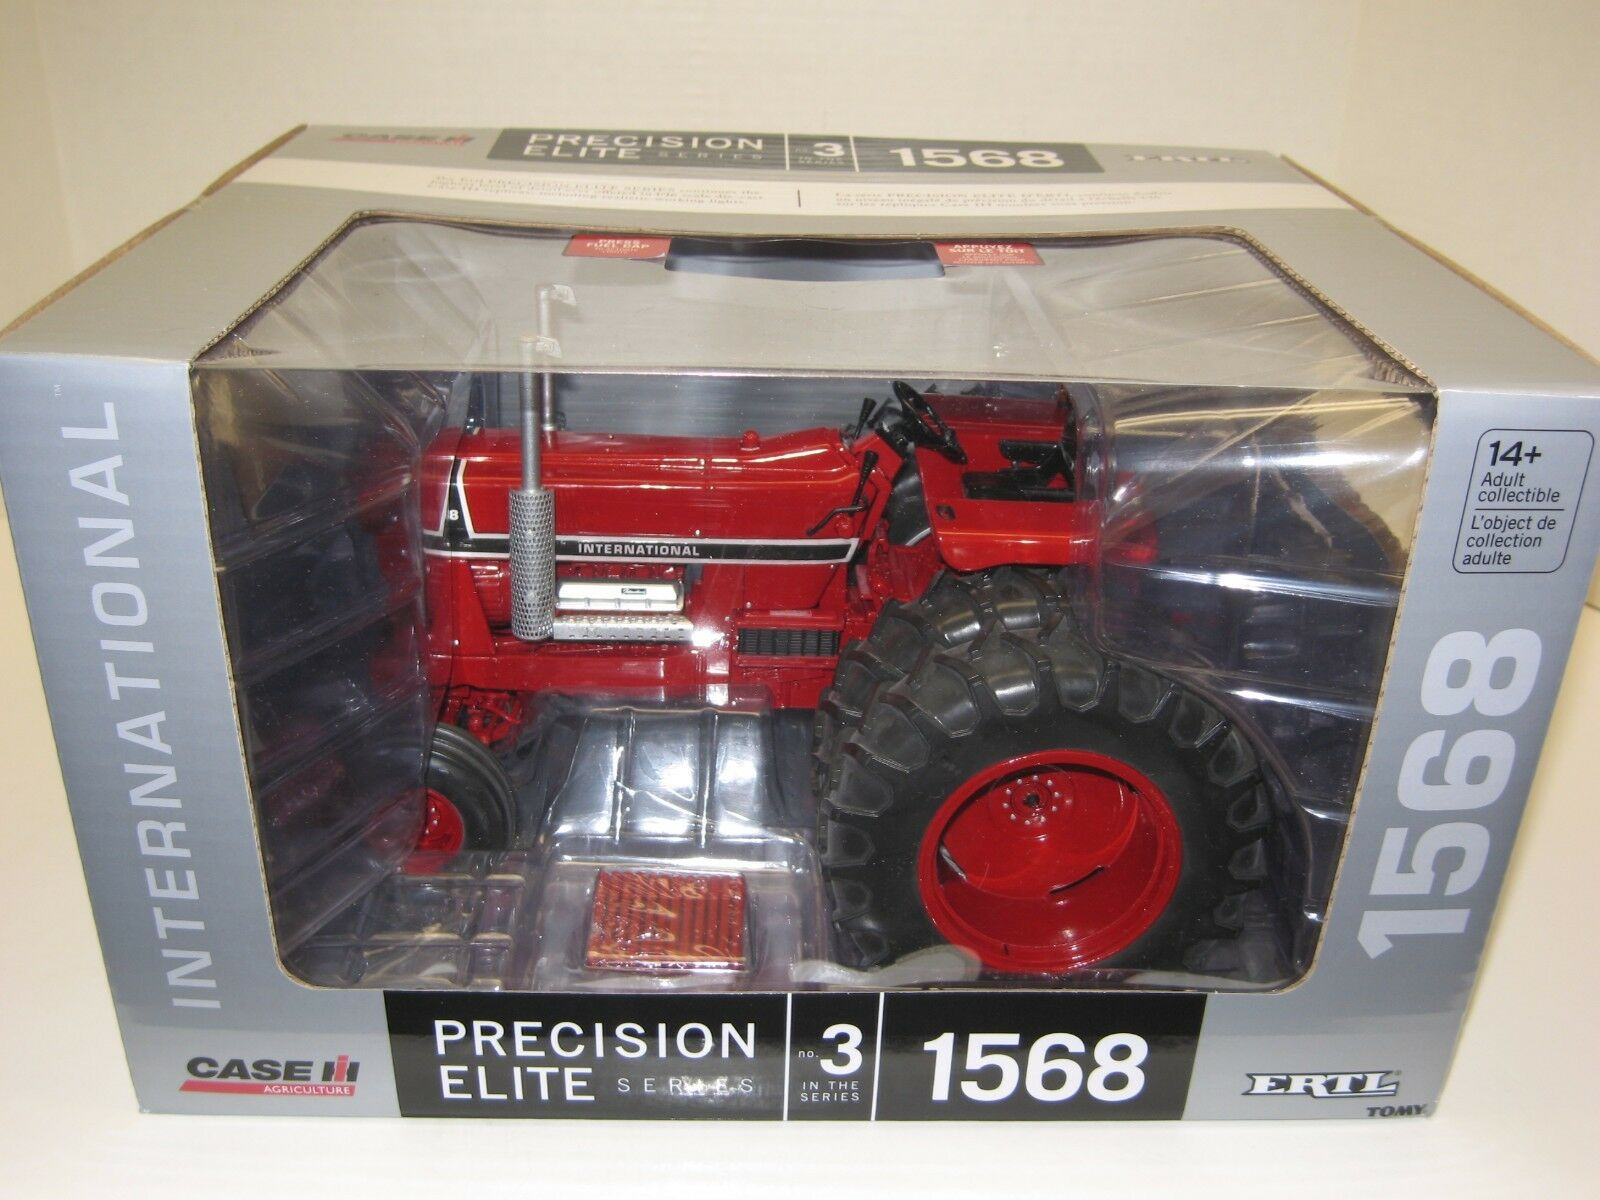 1 16 INTERNATIONAL 1568 V-8 PRECISION ELITE  3 w DUALS NIB gratuito shipping